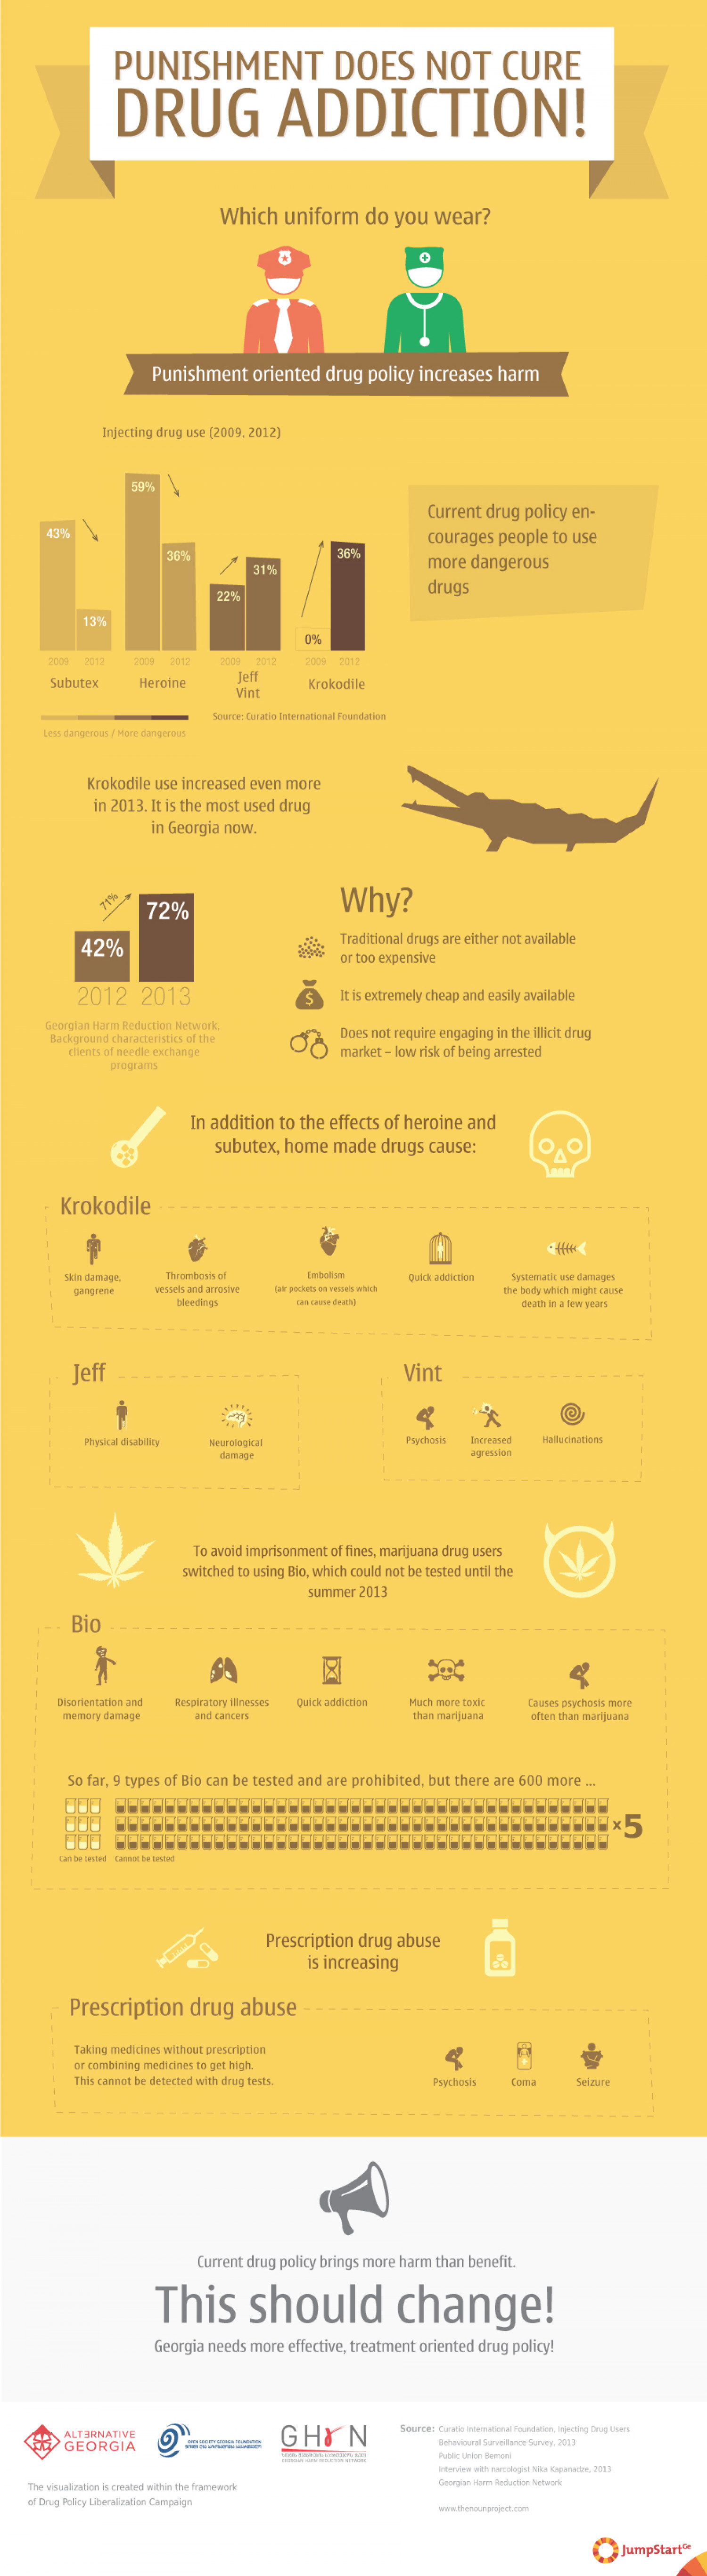 Punishment Does Not Cure Drug Addiction! Infographic